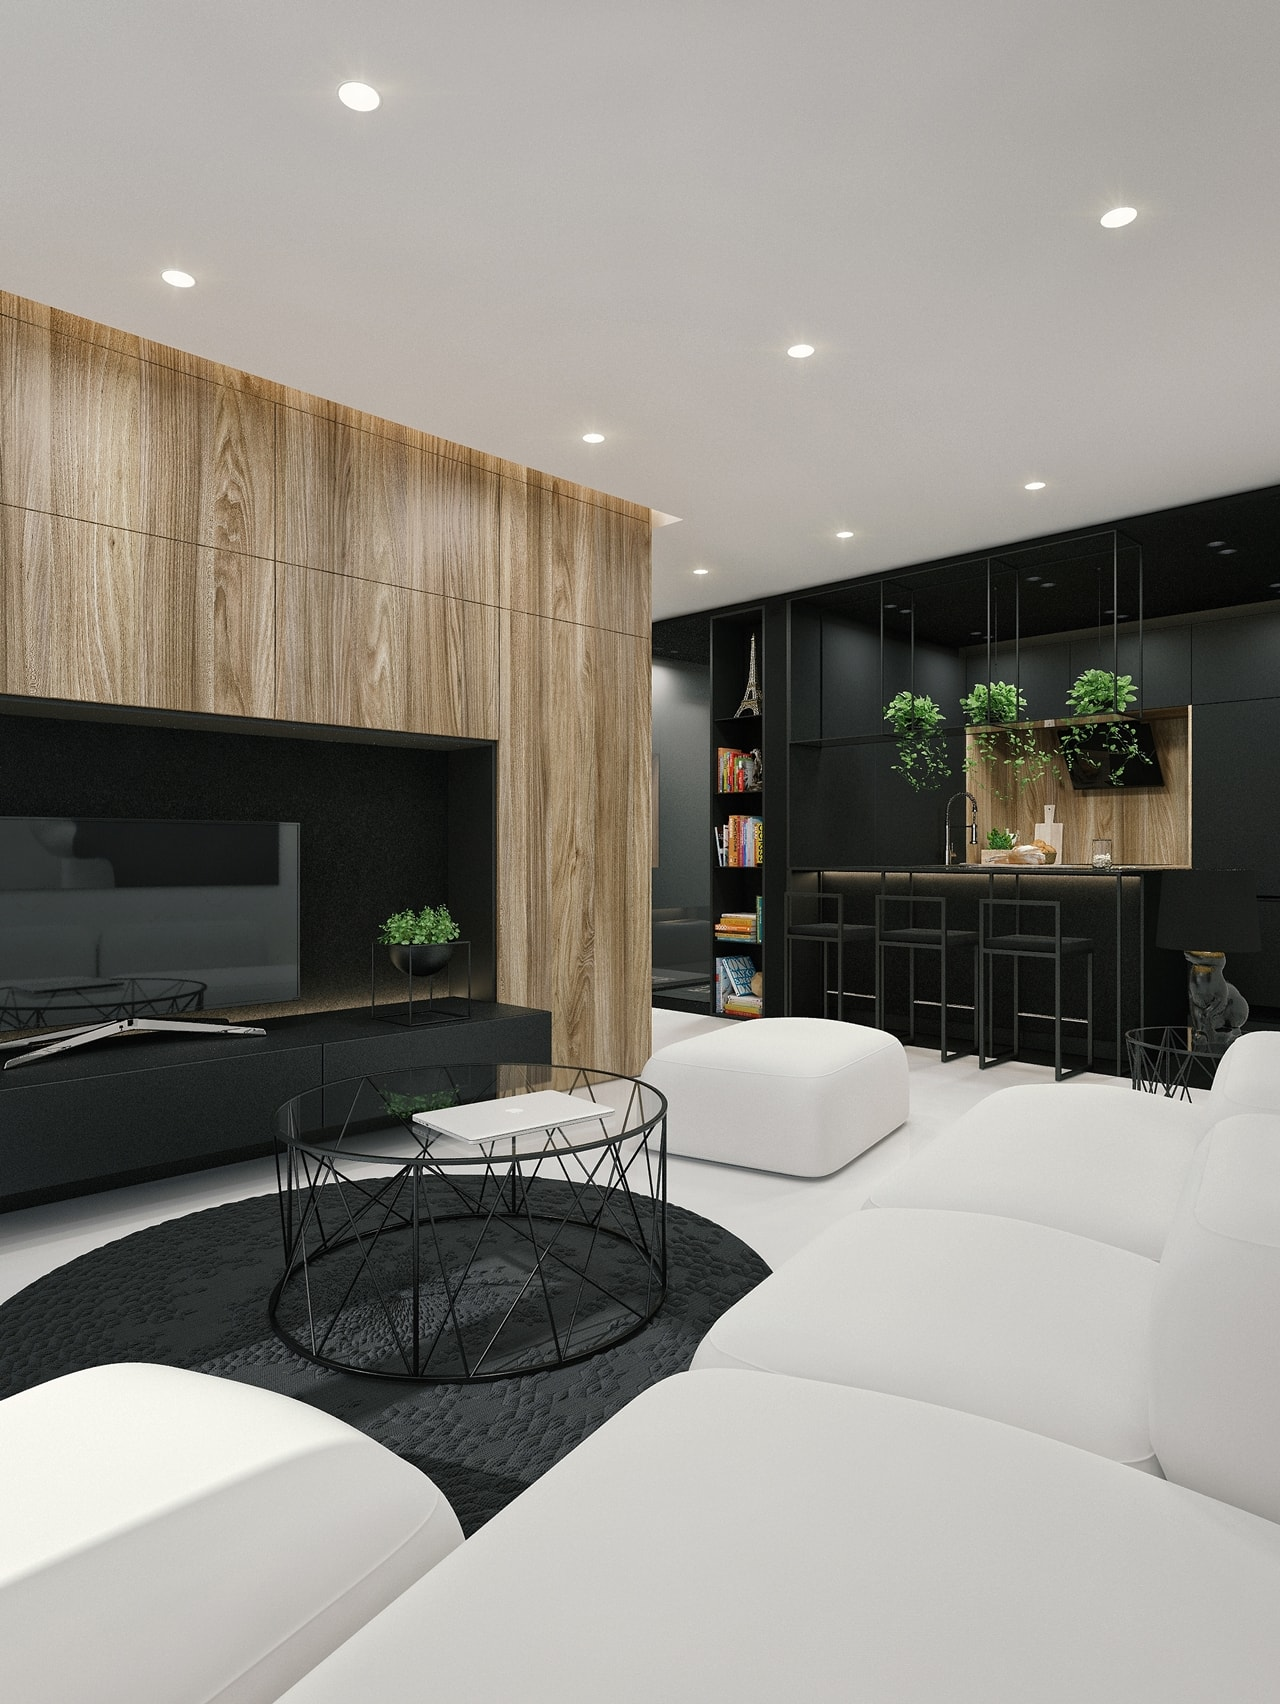 Home Interior Design For Living Room: Black And White Interior Design Ideas: Modern Apartment By